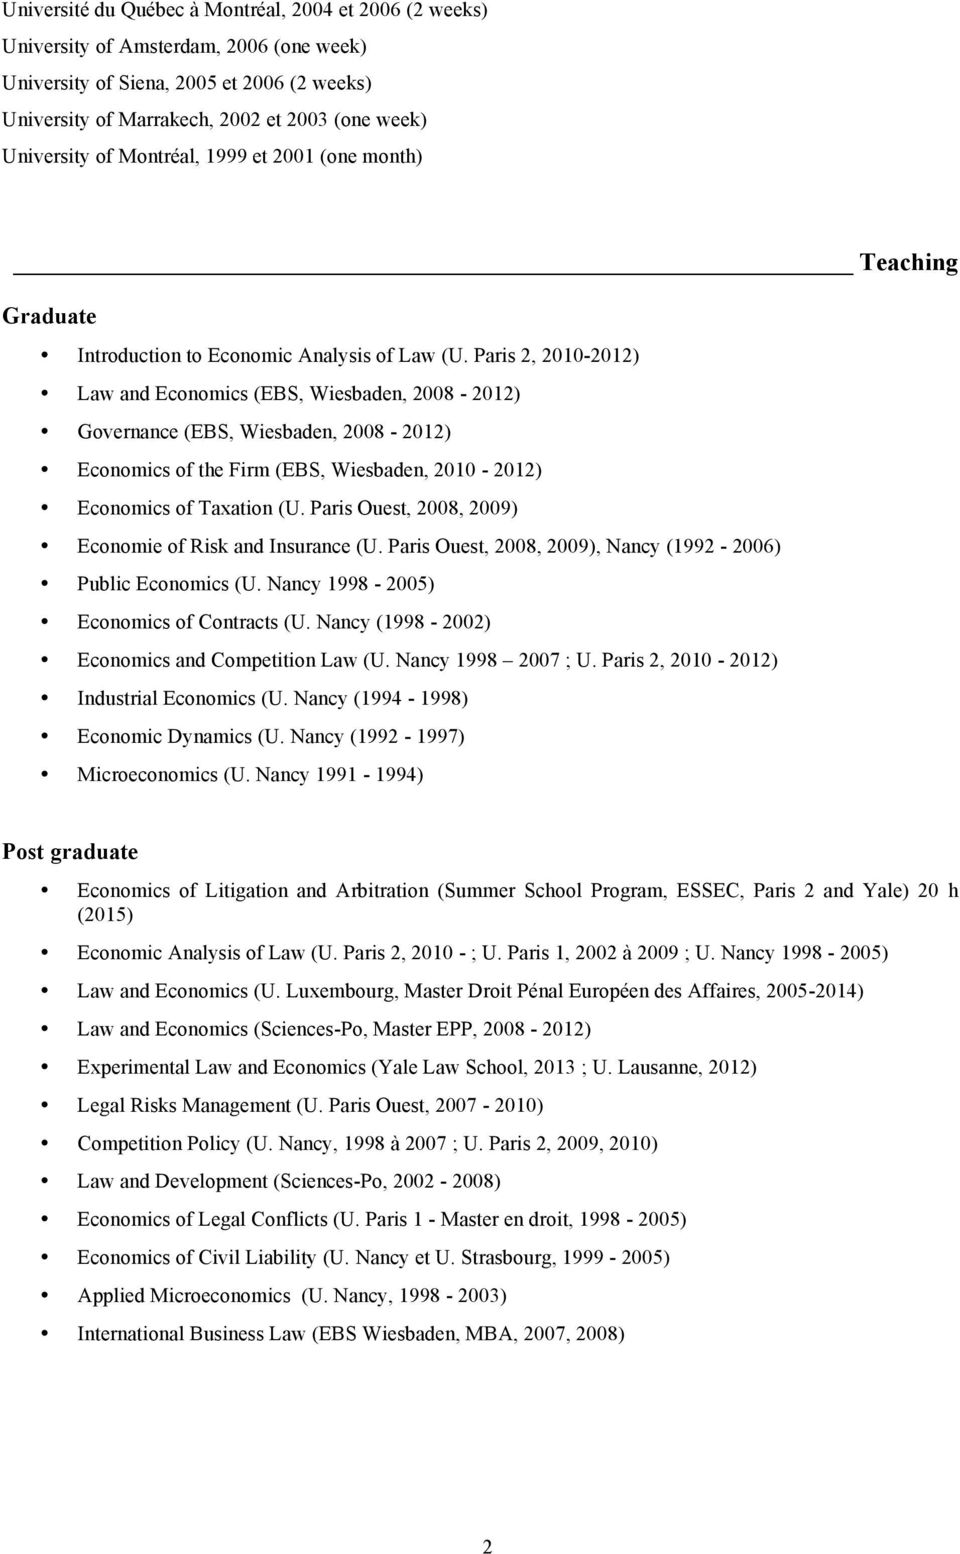 Paris 2, 2010-2012) Law and Economics (EBS, Wiesbaden, 2008-2012) Governance (EBS, Wiesbaden, 2008-2012) Economics of the Firm (EBS, Wiesbaden, 2010-2012) Economics of Taxation (U.